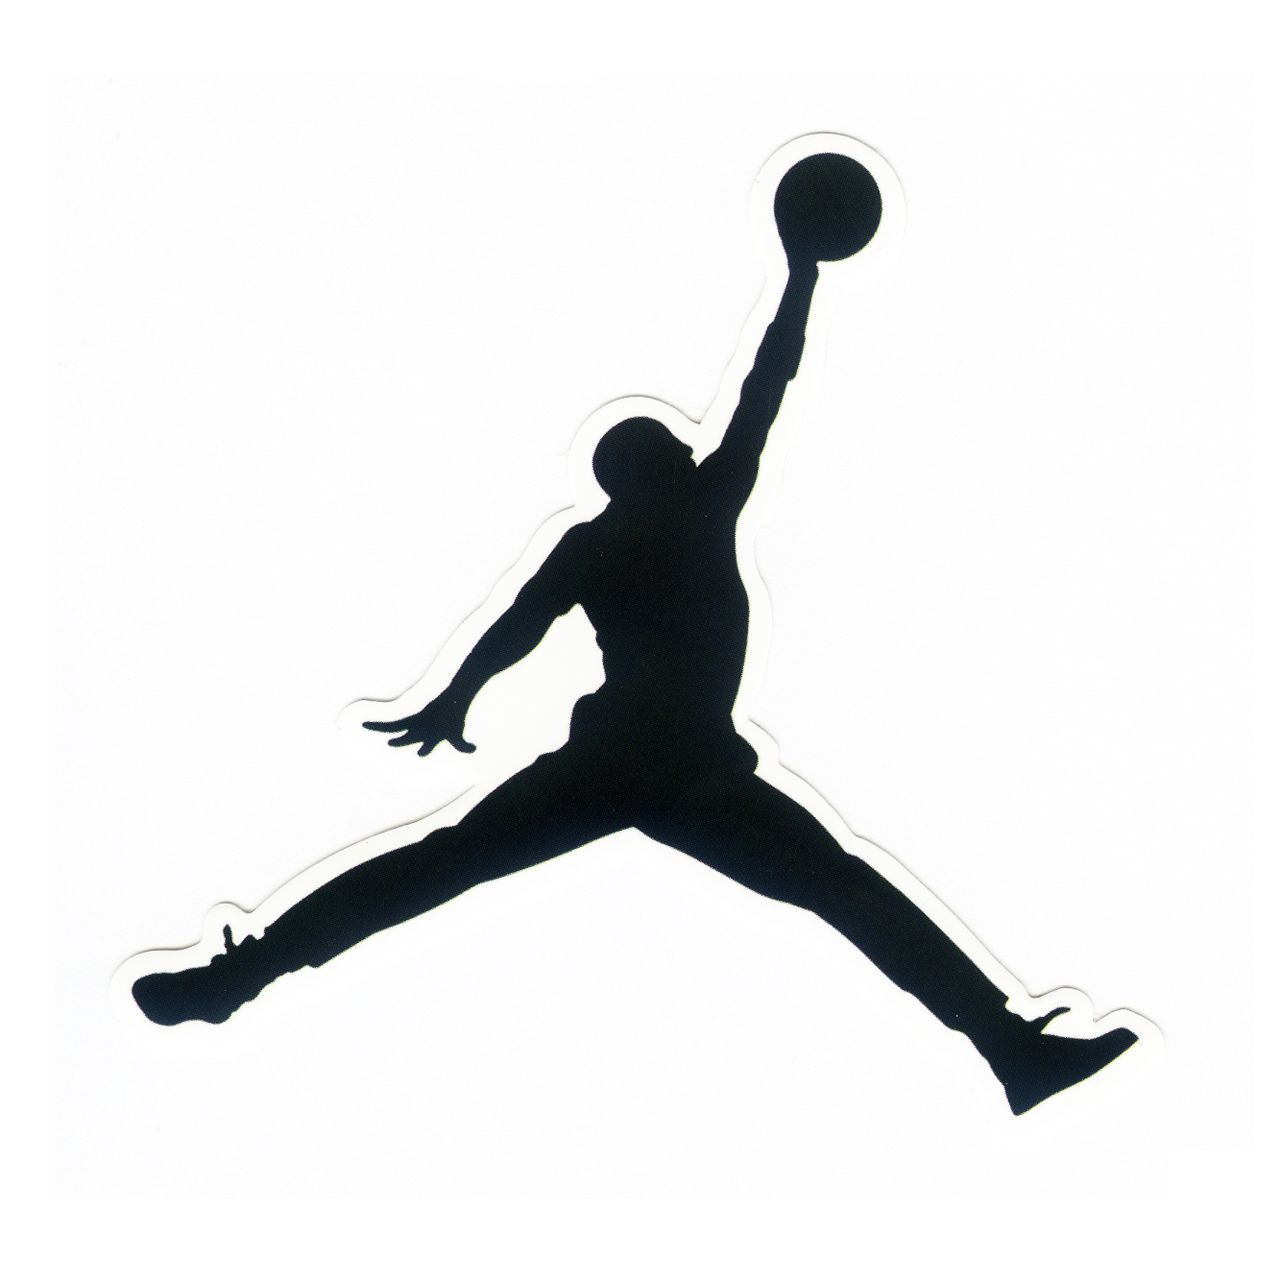 1096 michael jordan logo height 8 cm decal sticker decalstar com